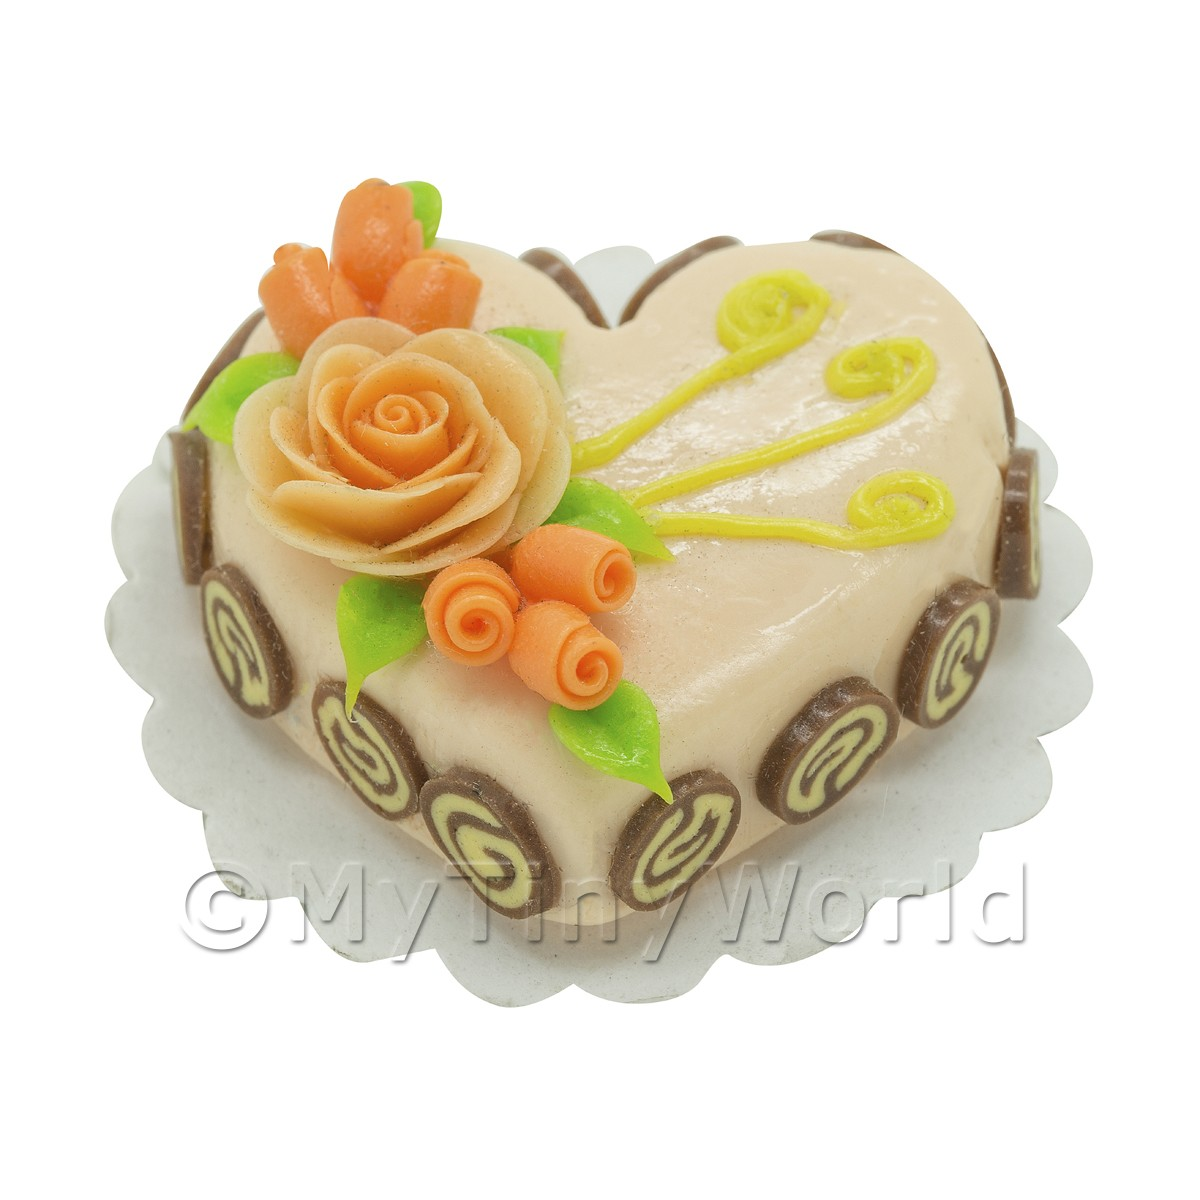 Dolls House Miniature Peach Heat Shaped Cake